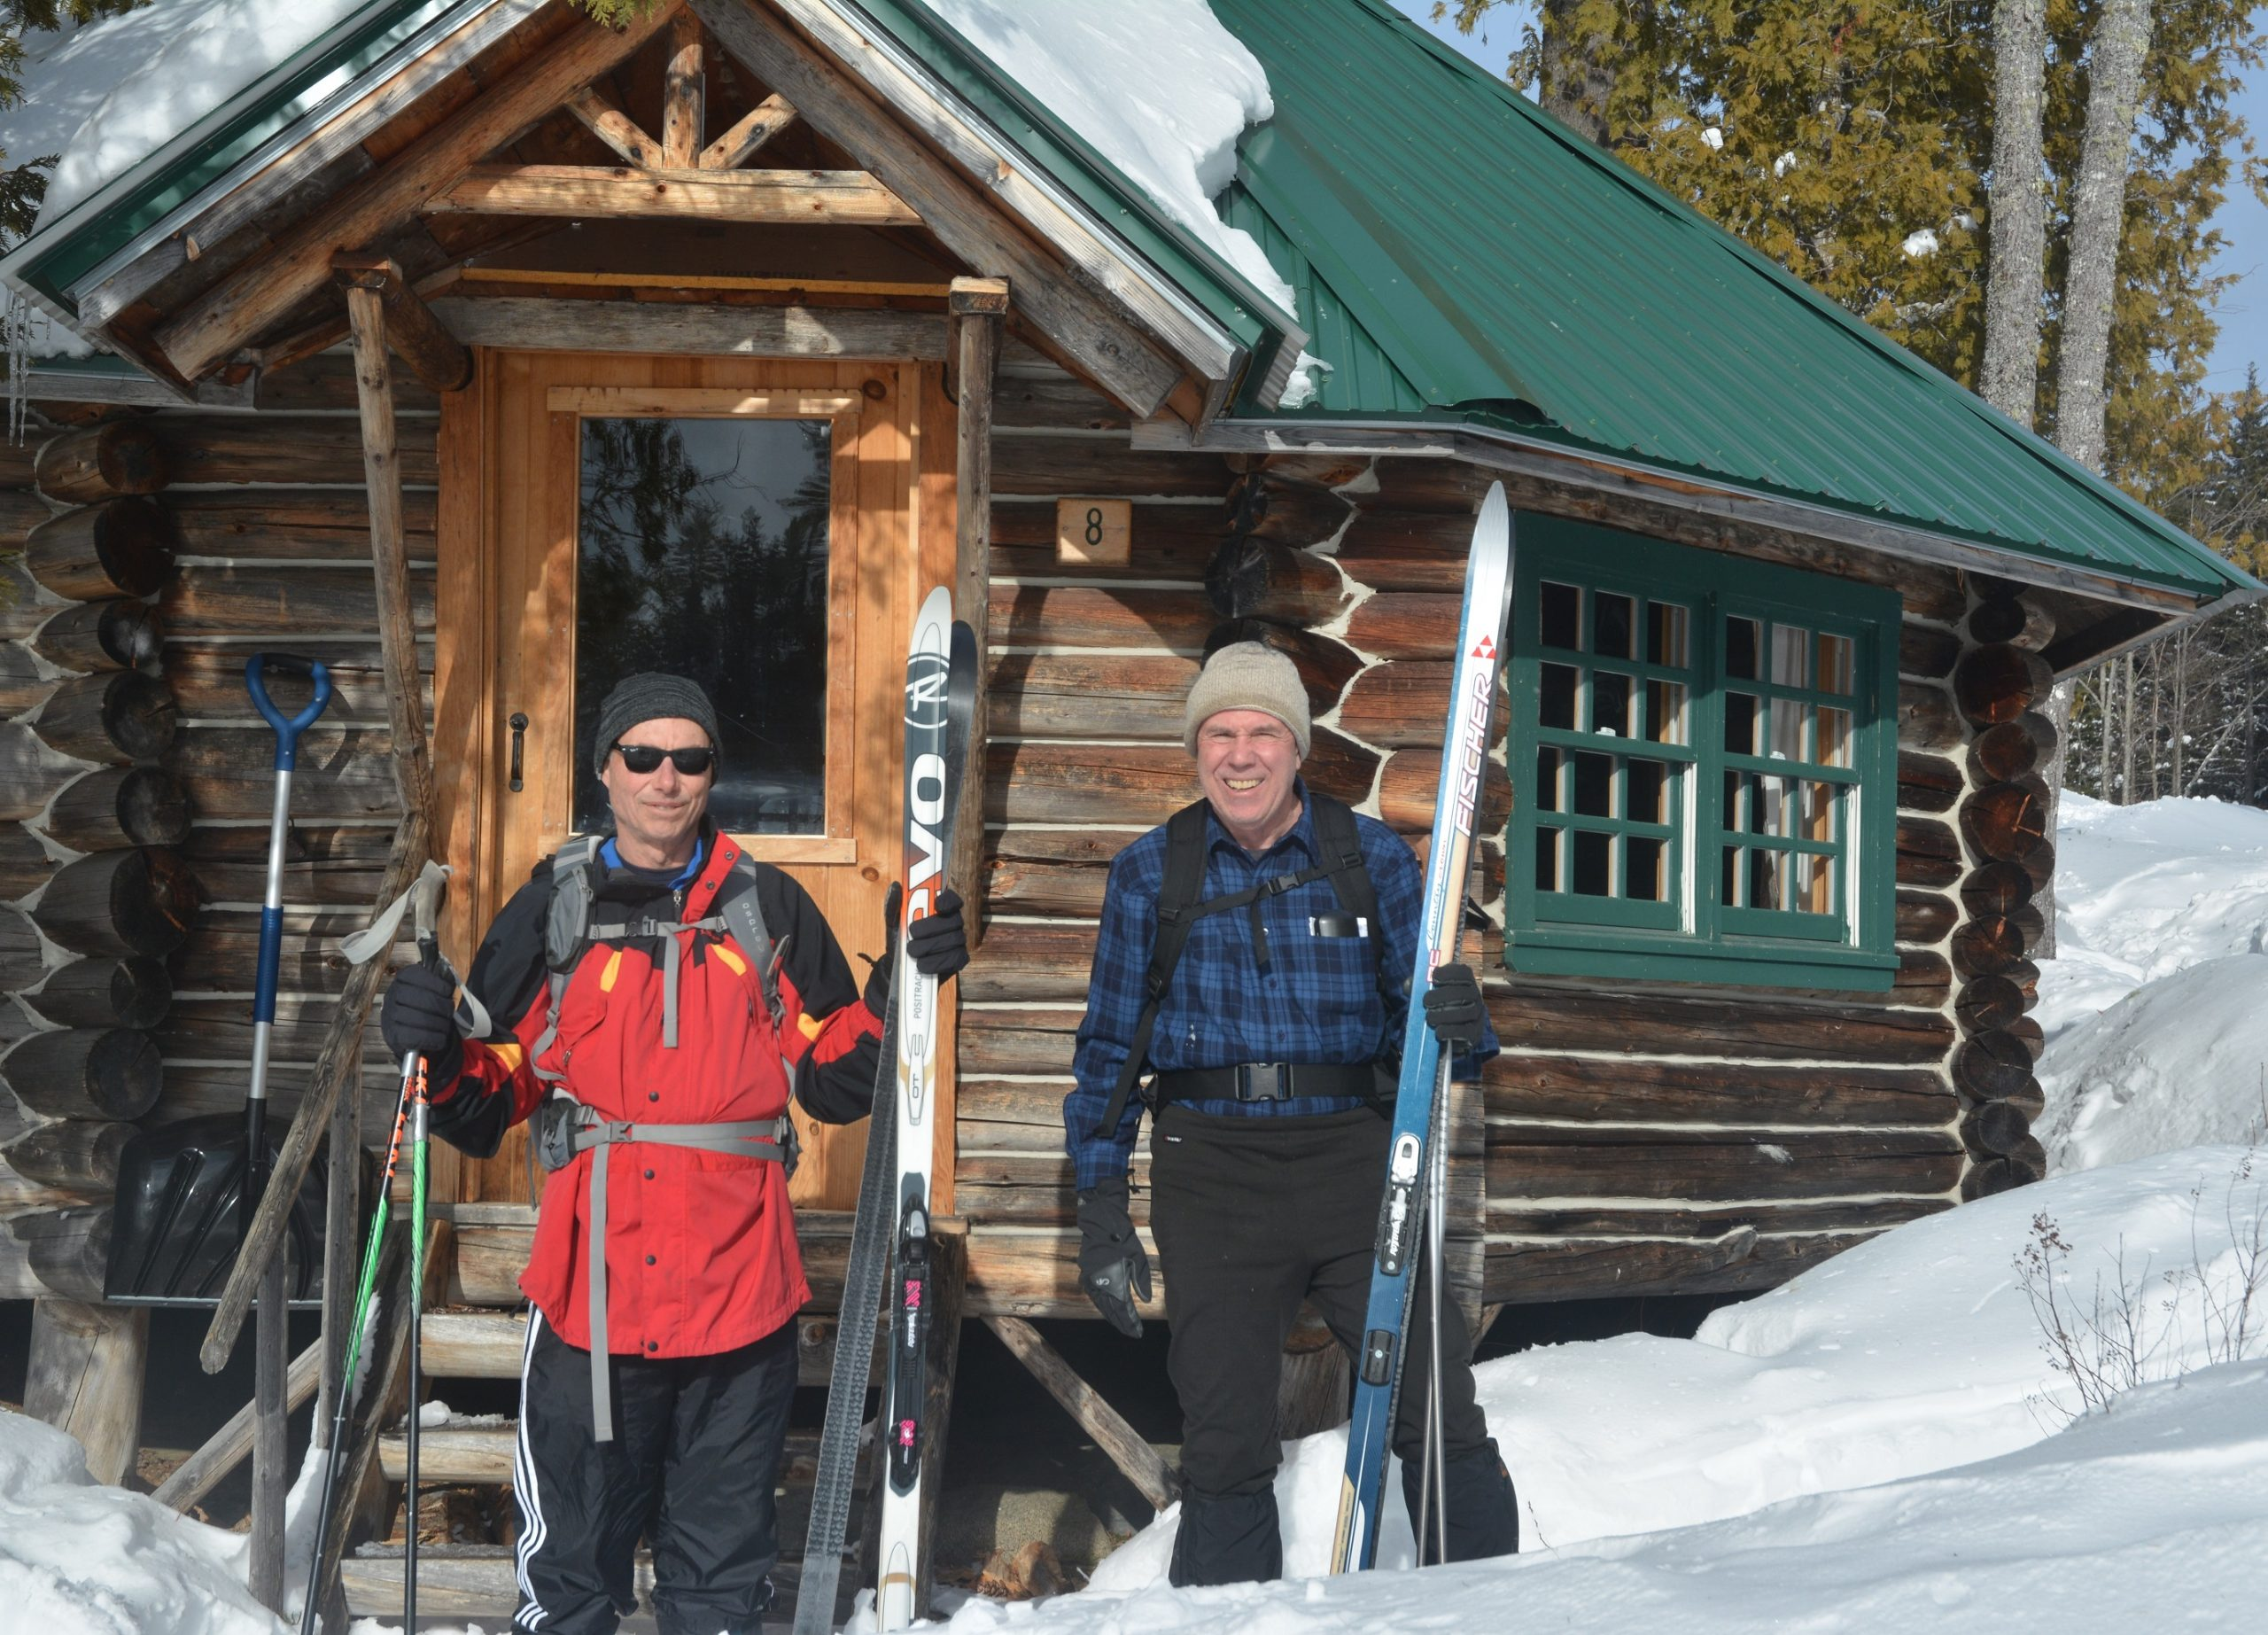 You can book the unique, eight-sided cabin that serves as the Gorman Chairback Lodge's heritage centerpiece on the lake's edge when you take a lodge-to-lodge, cross-country skiing adventure